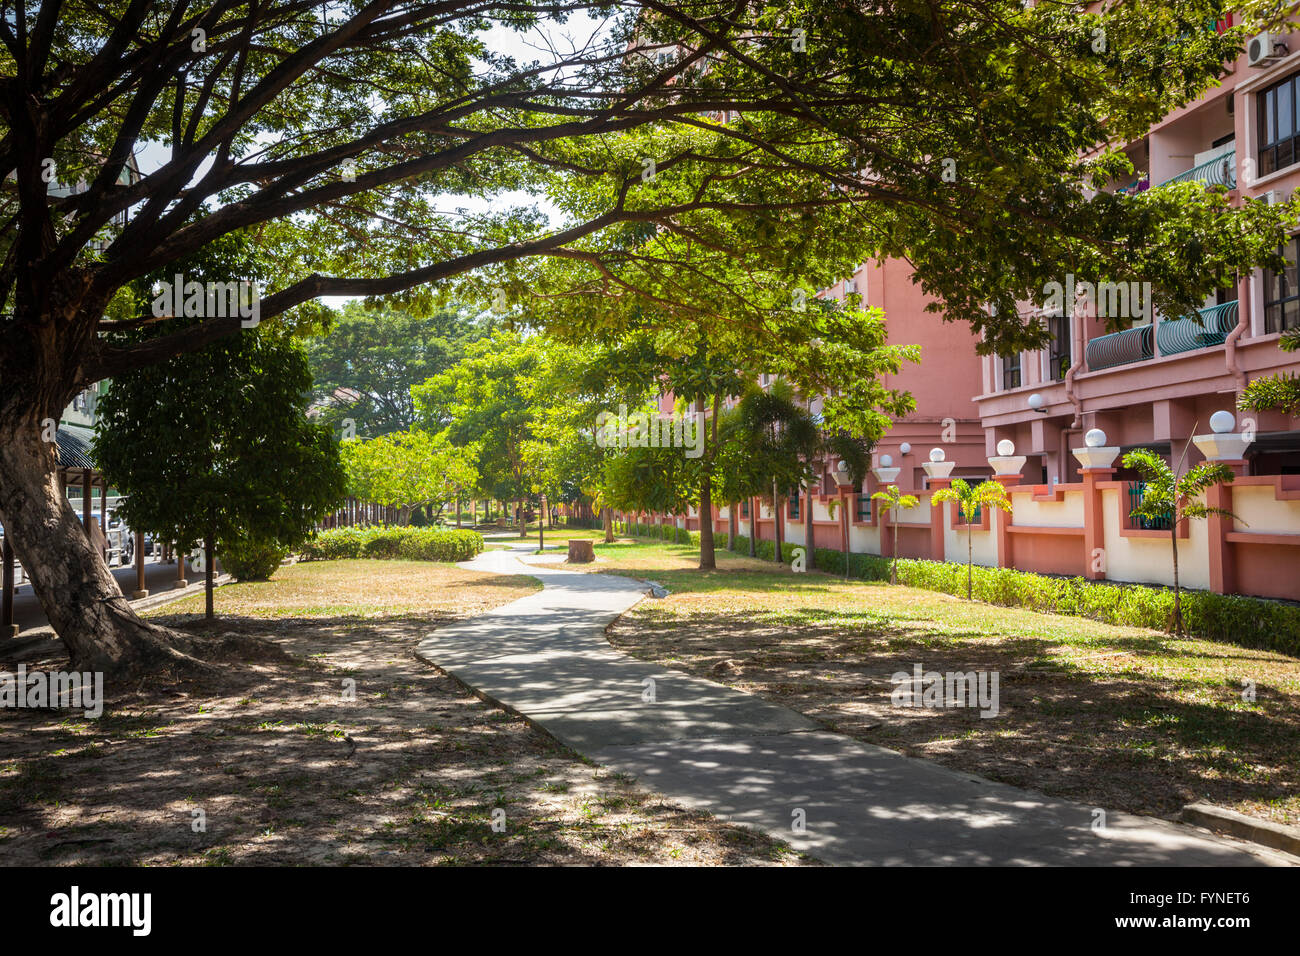 Pleasant urban pathway in the city of Kota Kinabalu, Borneo Malaysia - Stock Image